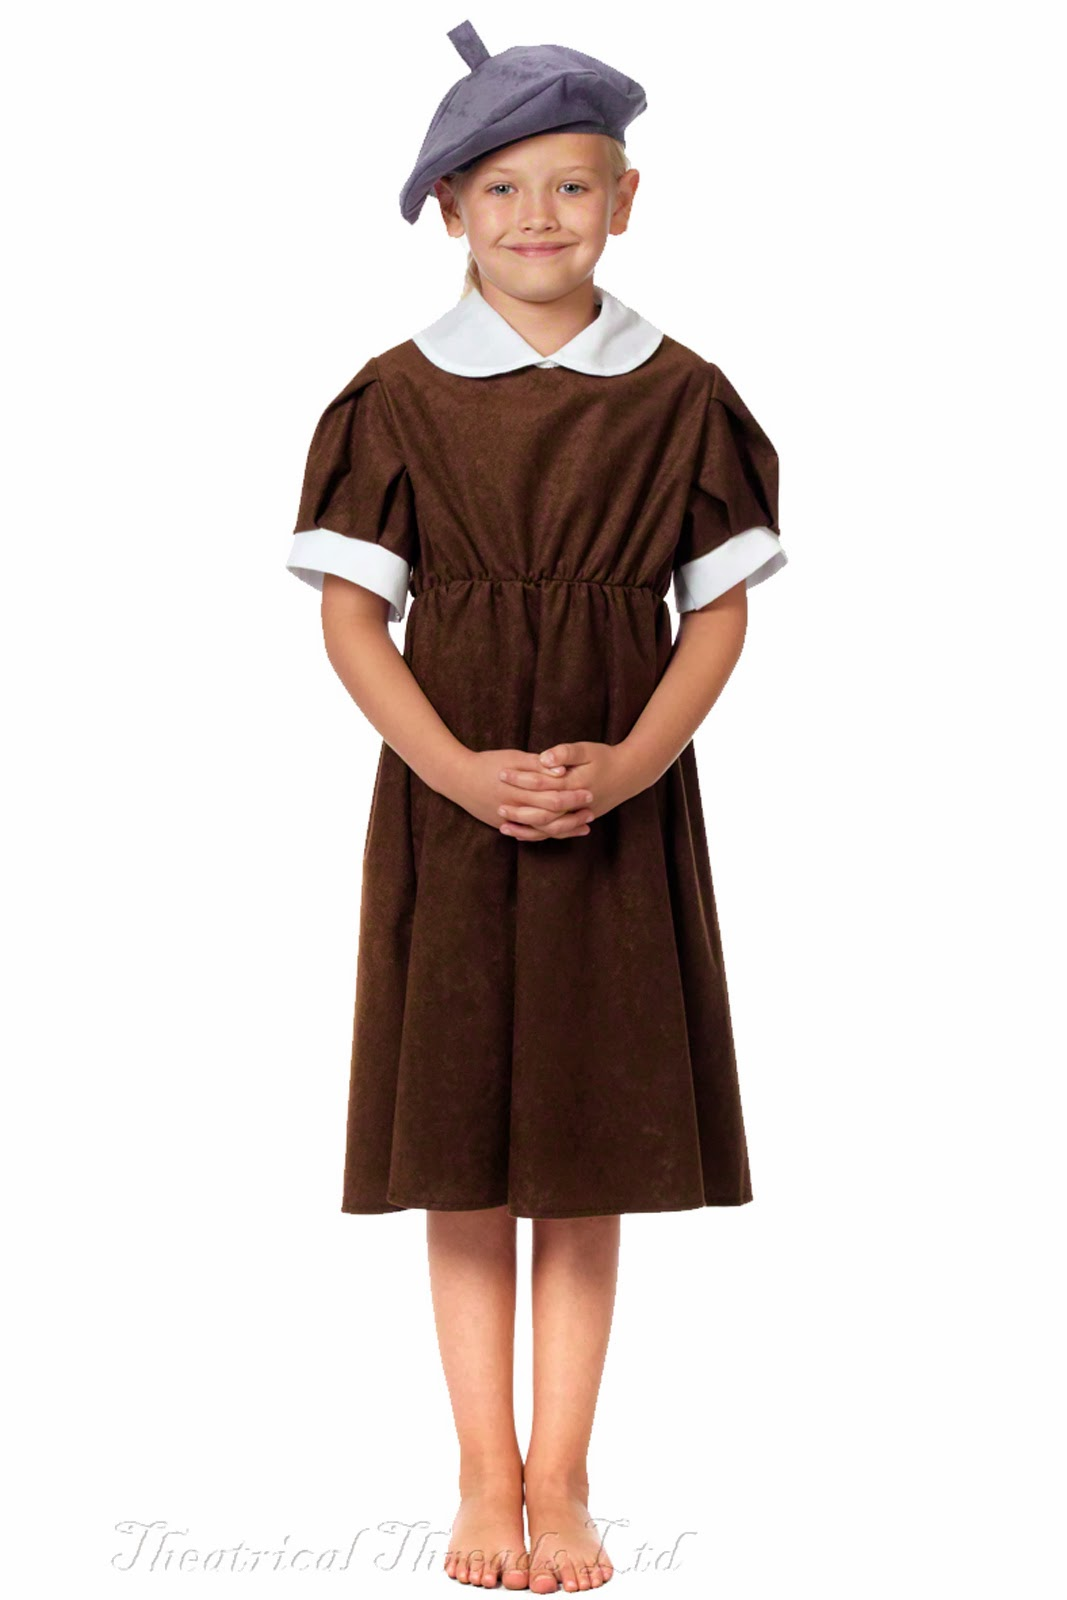 Kids Evacuee Costume age 8-10 & 10-12 years from Theatrical Threads